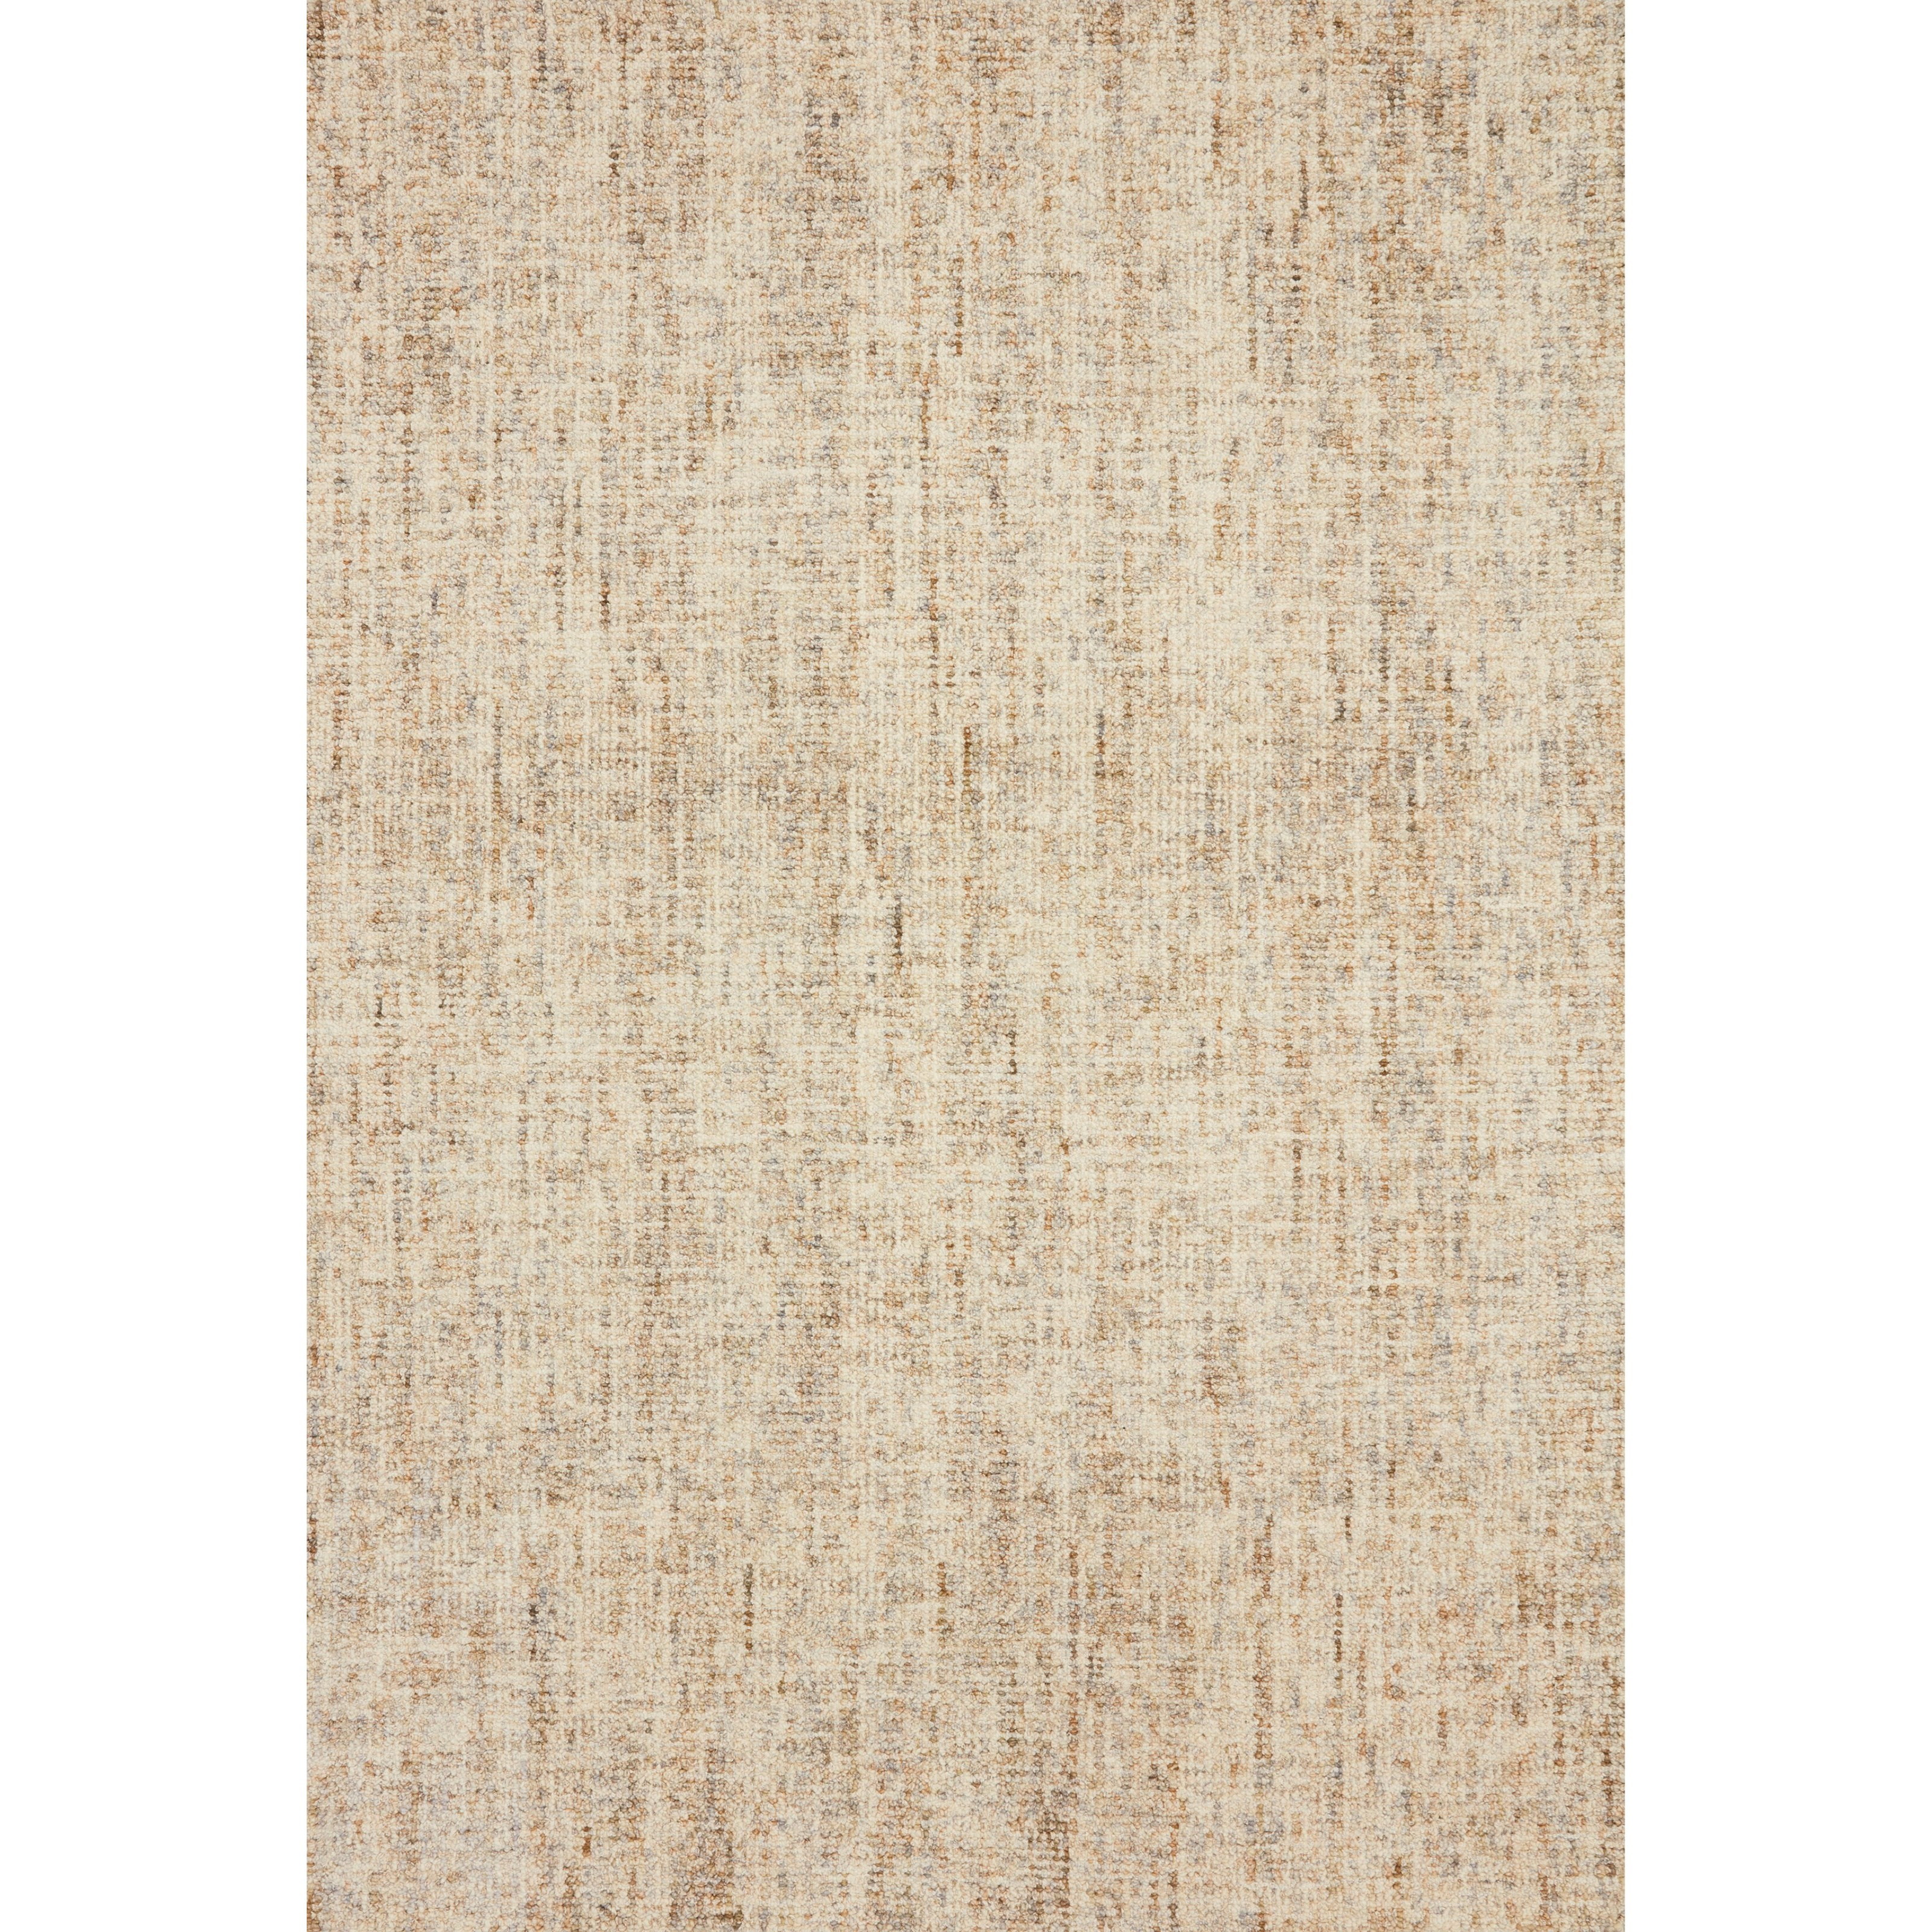 """Harlow 9'3"""" x 13' Sand / Stone Rug by Loloi Rugs at Virginia Furniture Market"""